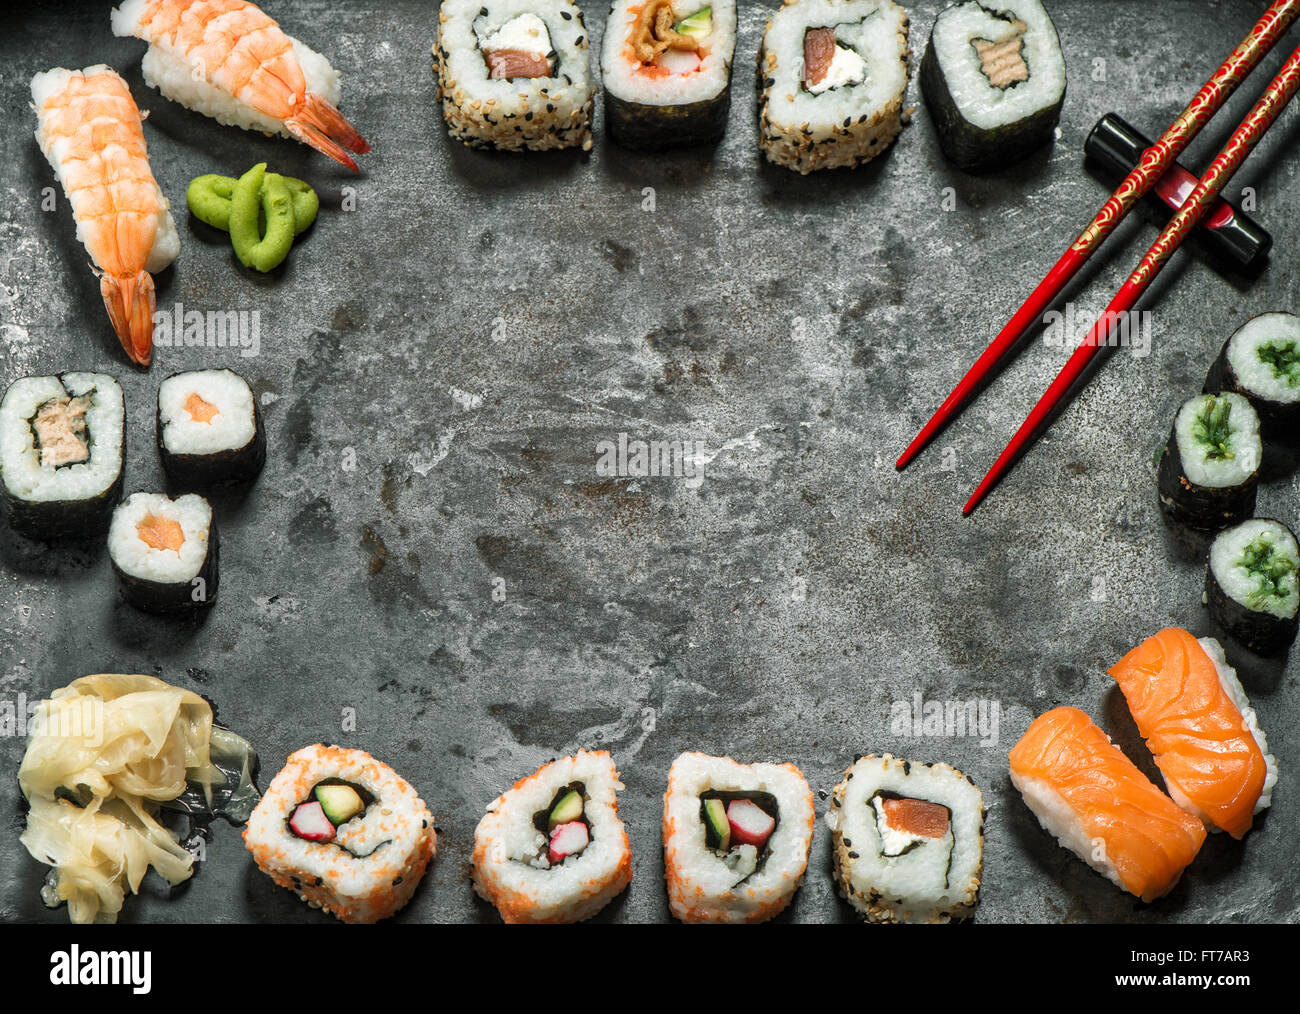 Traditional japanese food. Sushi rolls, nigiri, salmon, wasabi, shrimp, tuna, ginger, tofu, rice, avocado, pickled - Stock Image